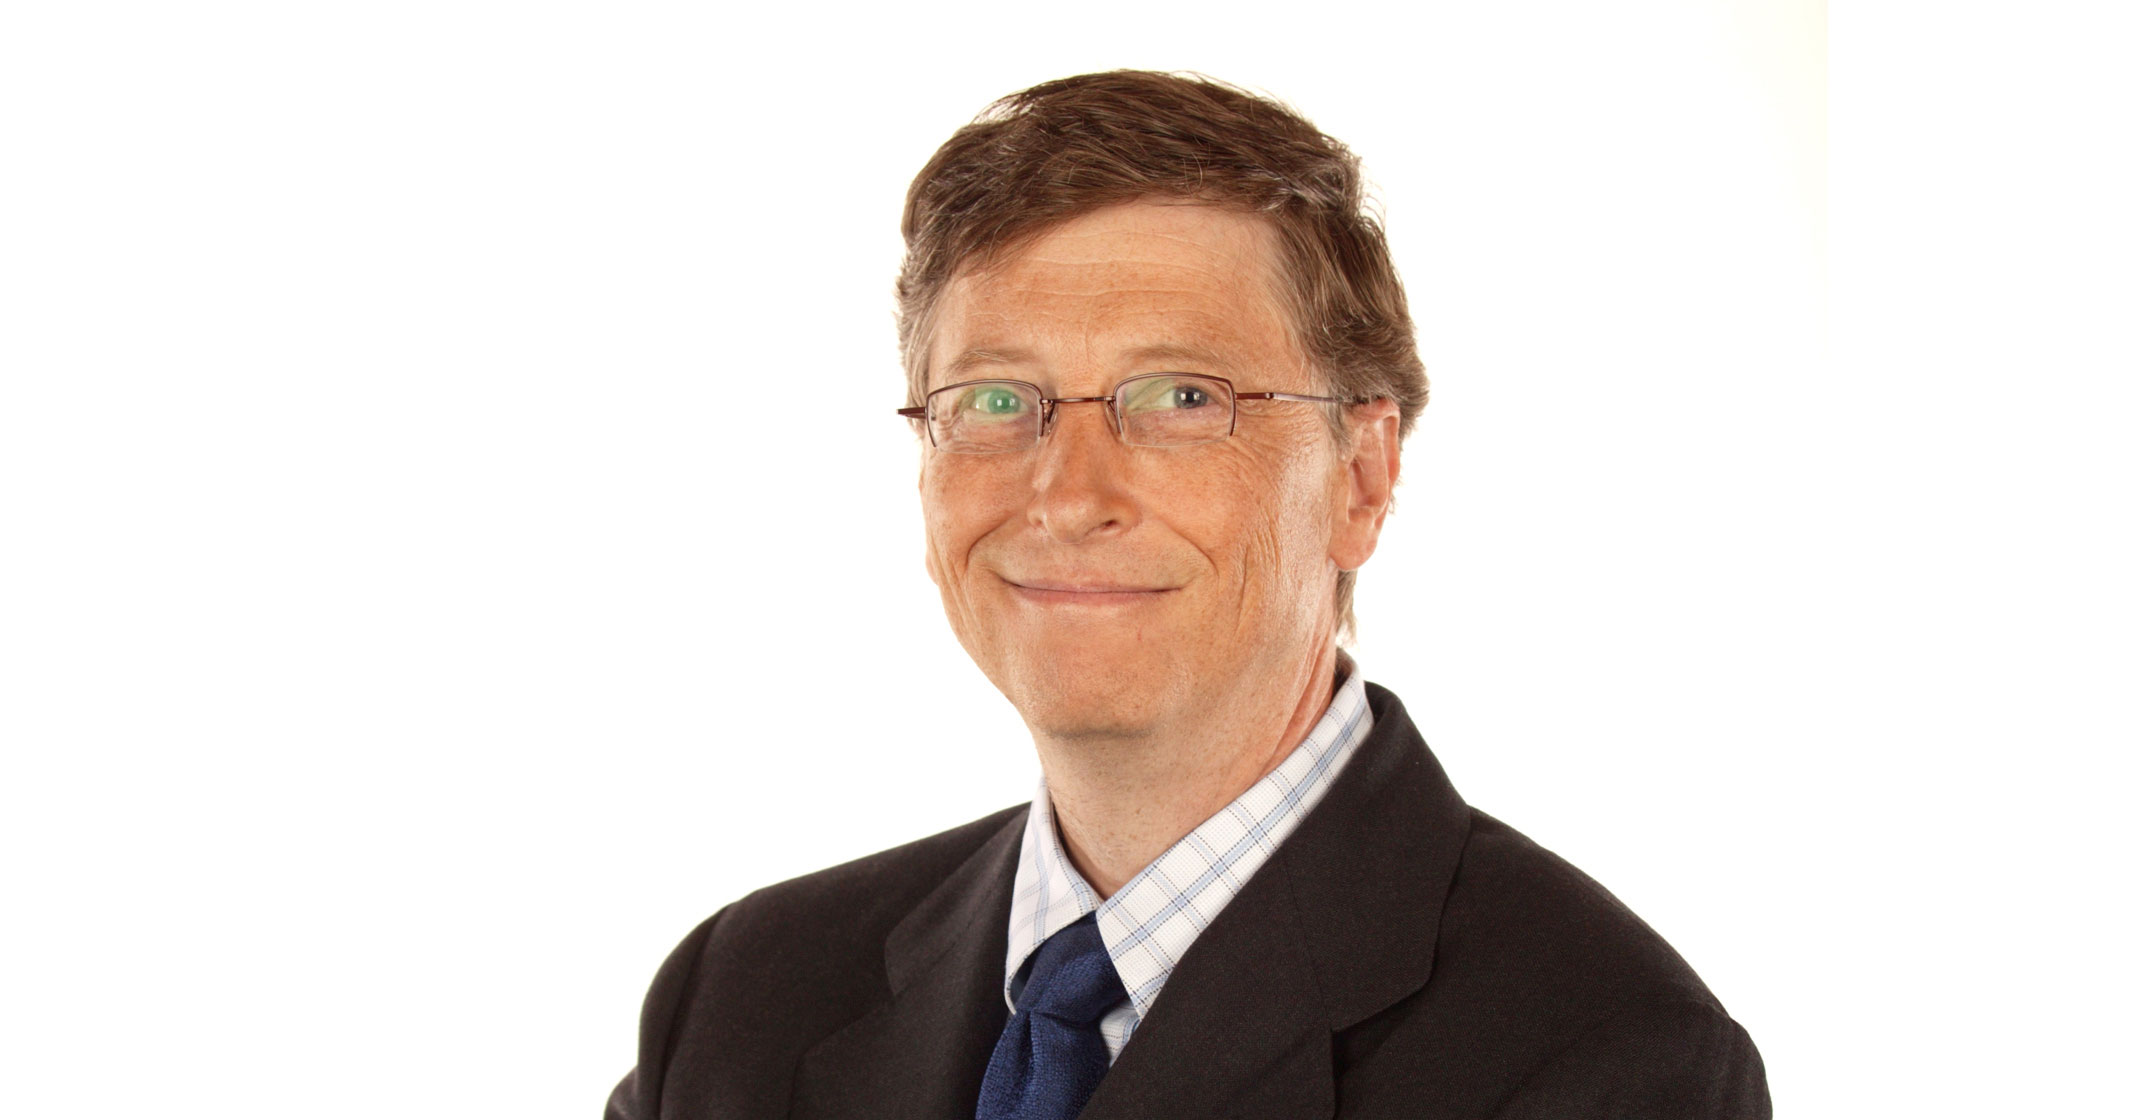 Gates Makes Massive Microsoft Corporation (MSFT) Donation